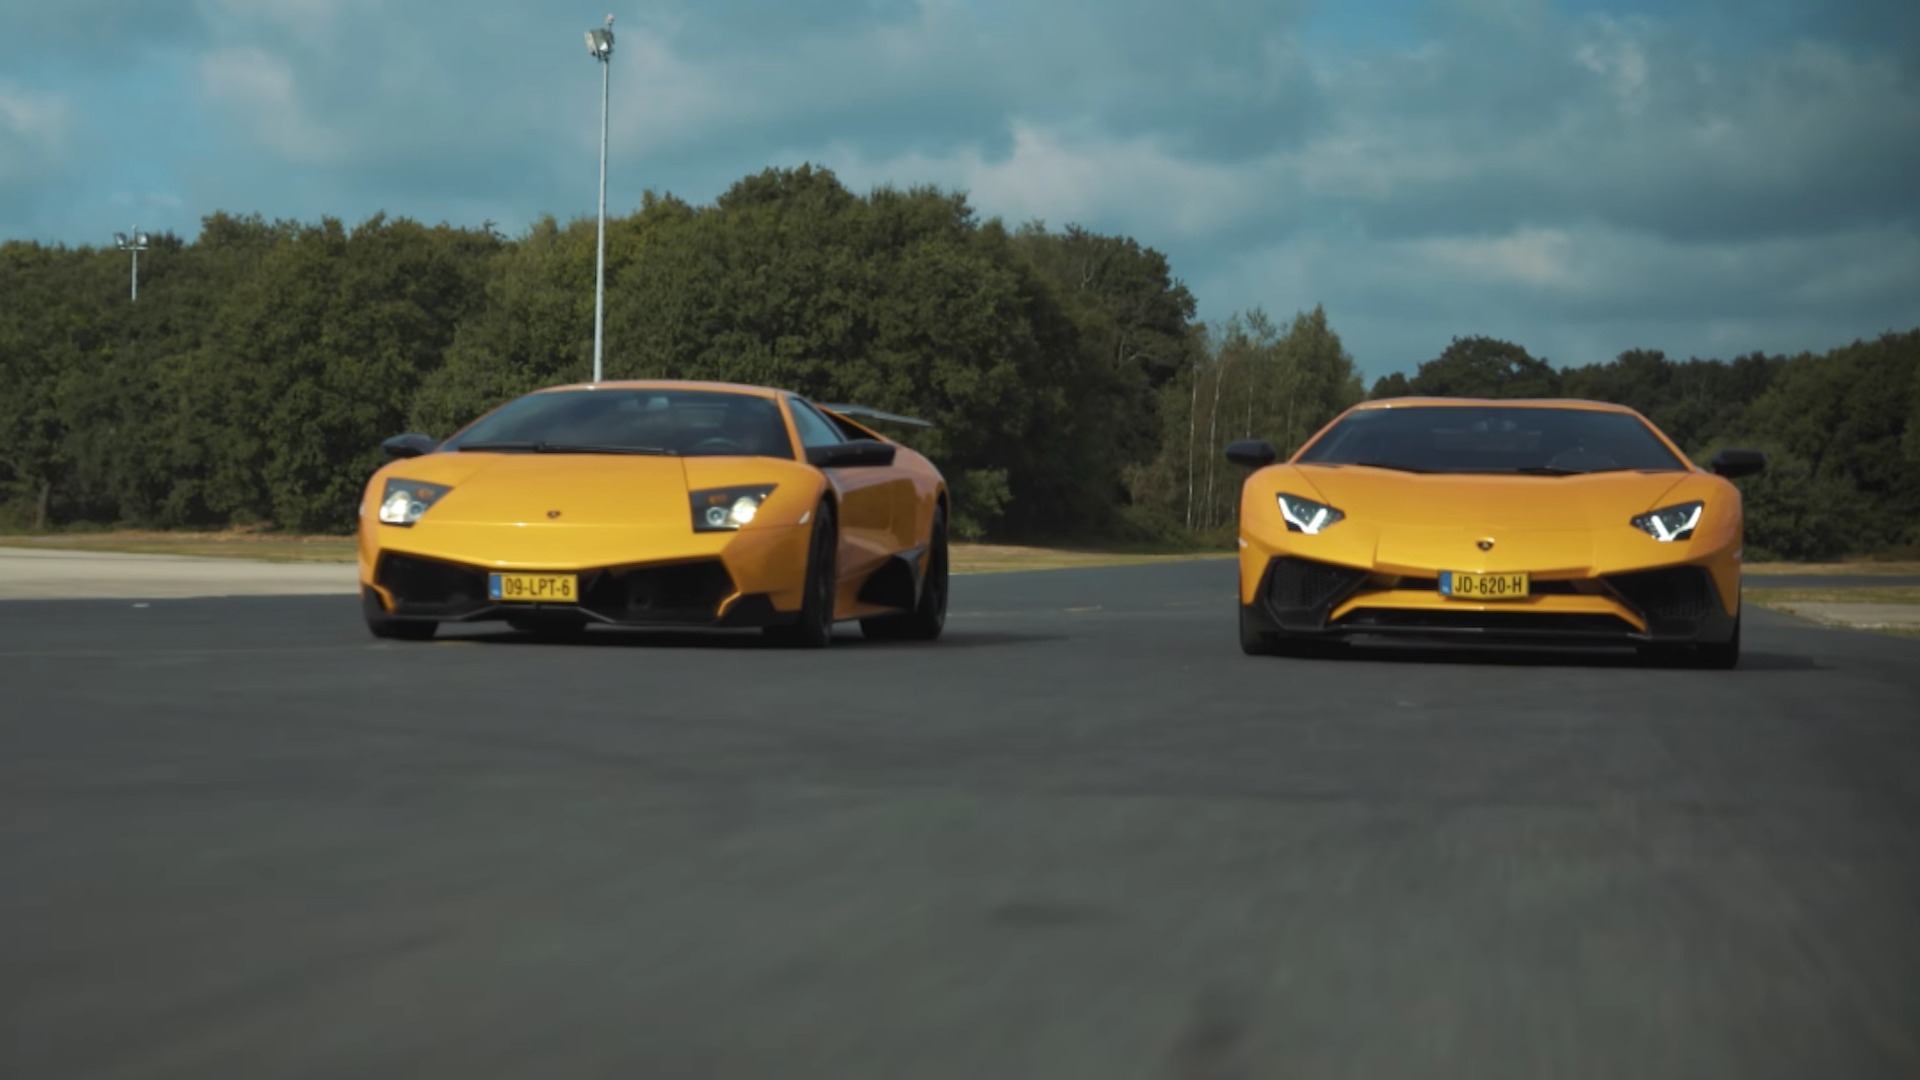 Murcielago Sv Aventador Sv Featured In Owner S Action Packed Film